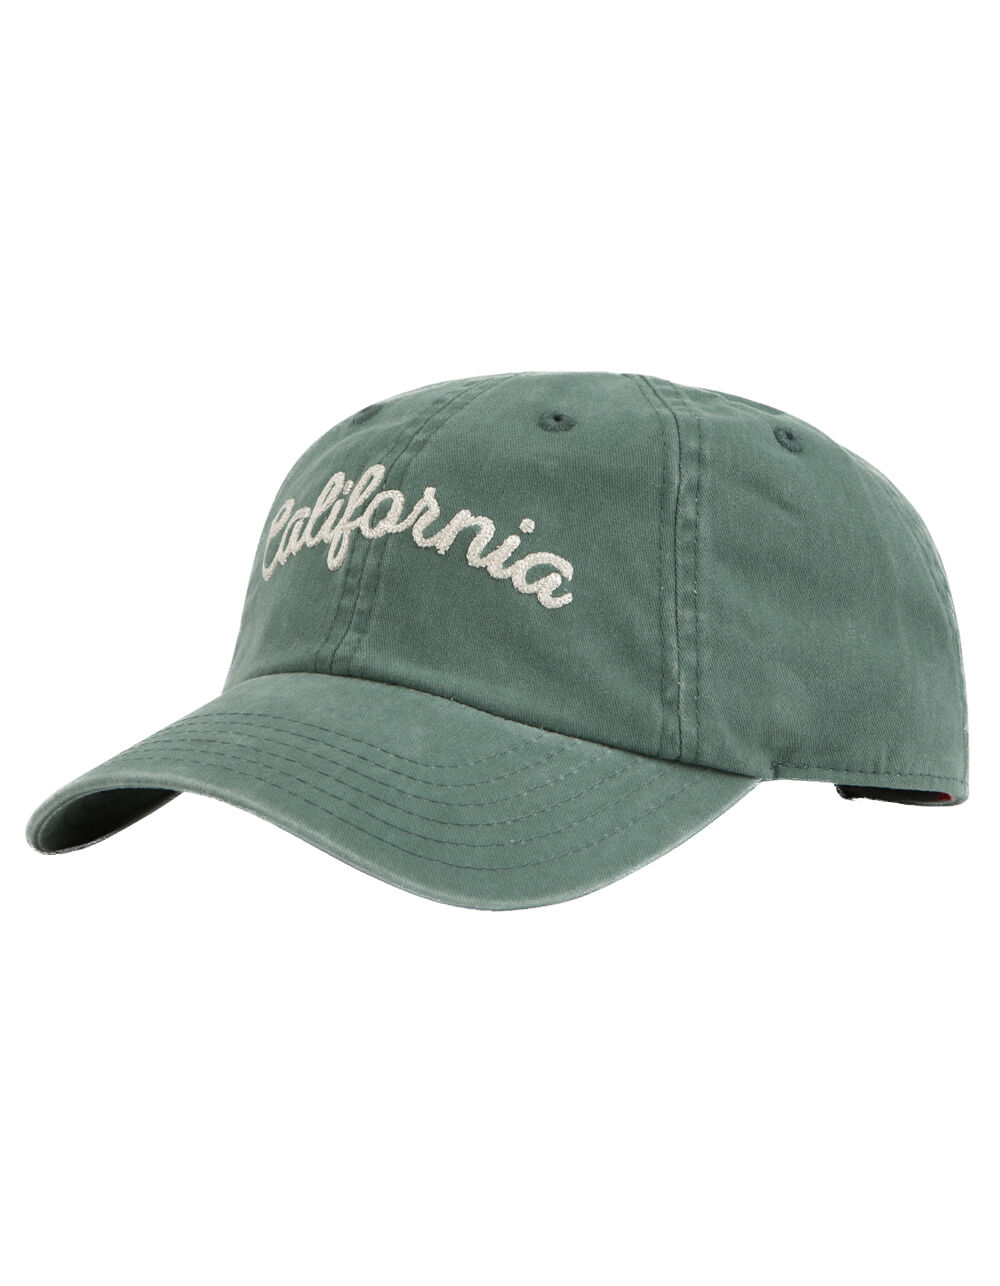 Image of AMERICAN NEEDLE CALIFORNIA DAD HAT